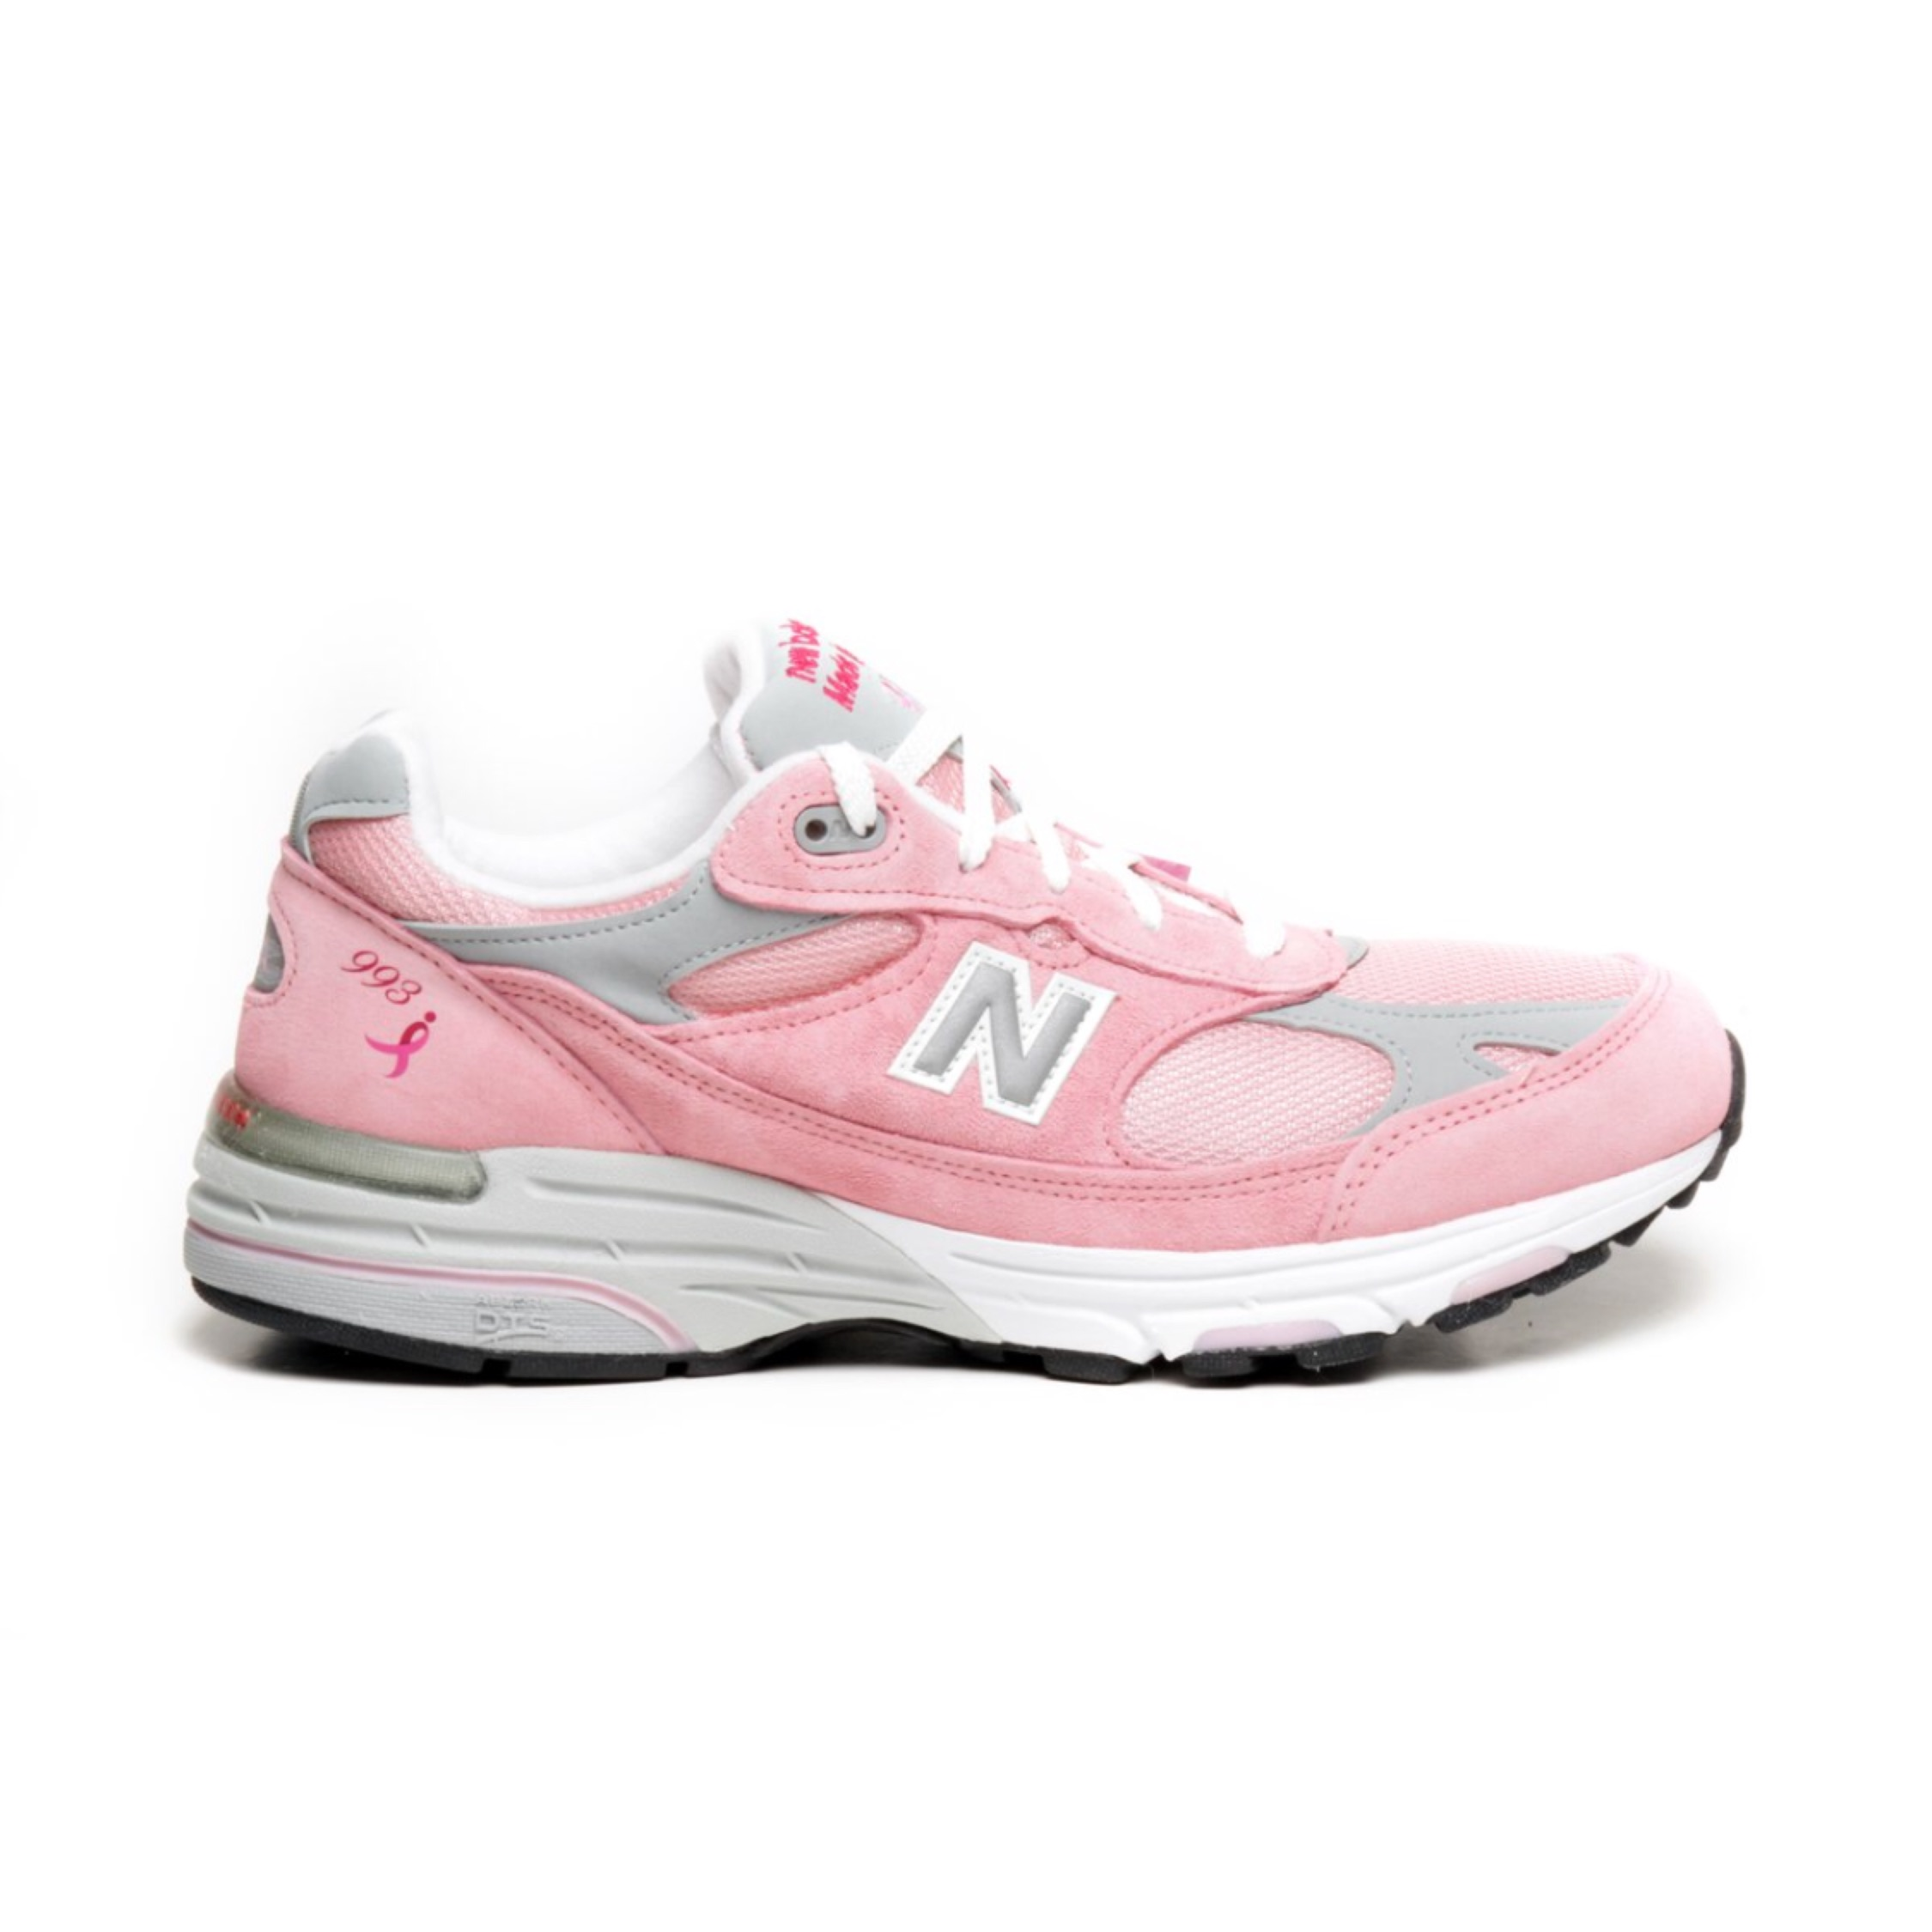 new arrival f8405 3c6f1 New Balance 993 Baby Pink Eu40.5